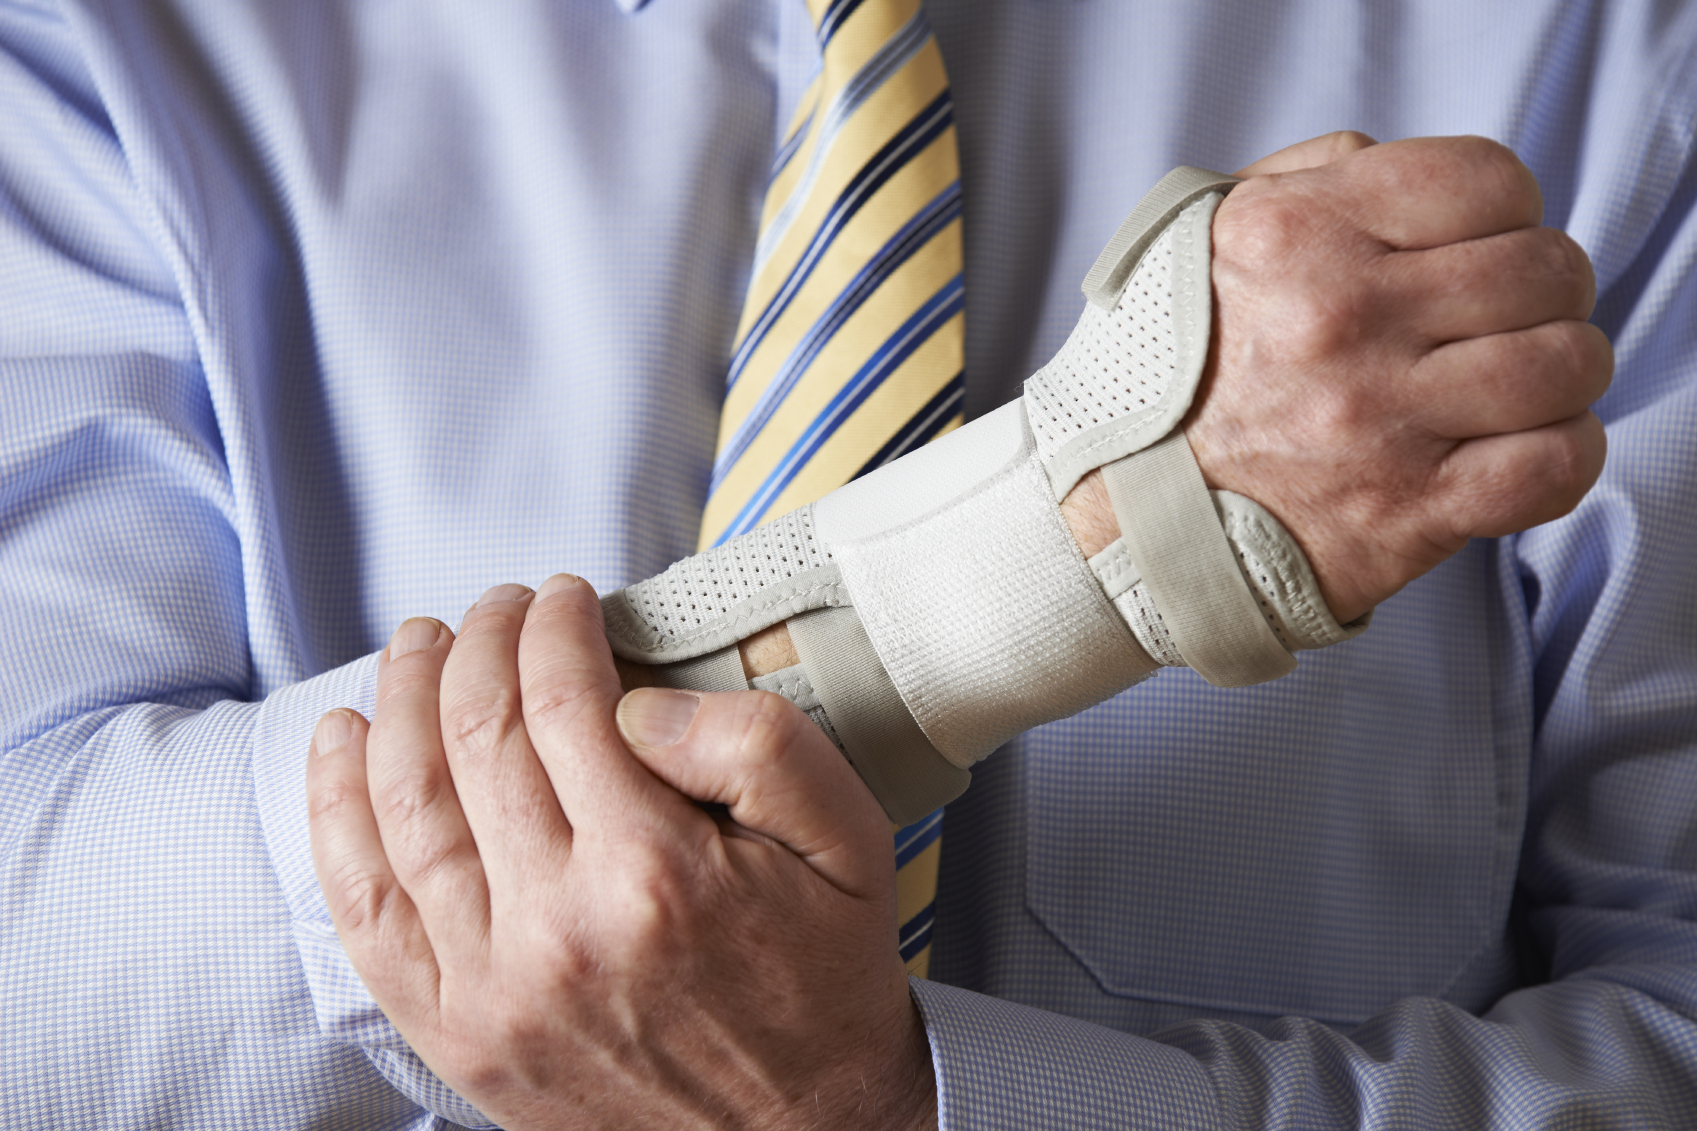 Hire a Professional Accident Attorney For Taking Care of Your Lawsuits!